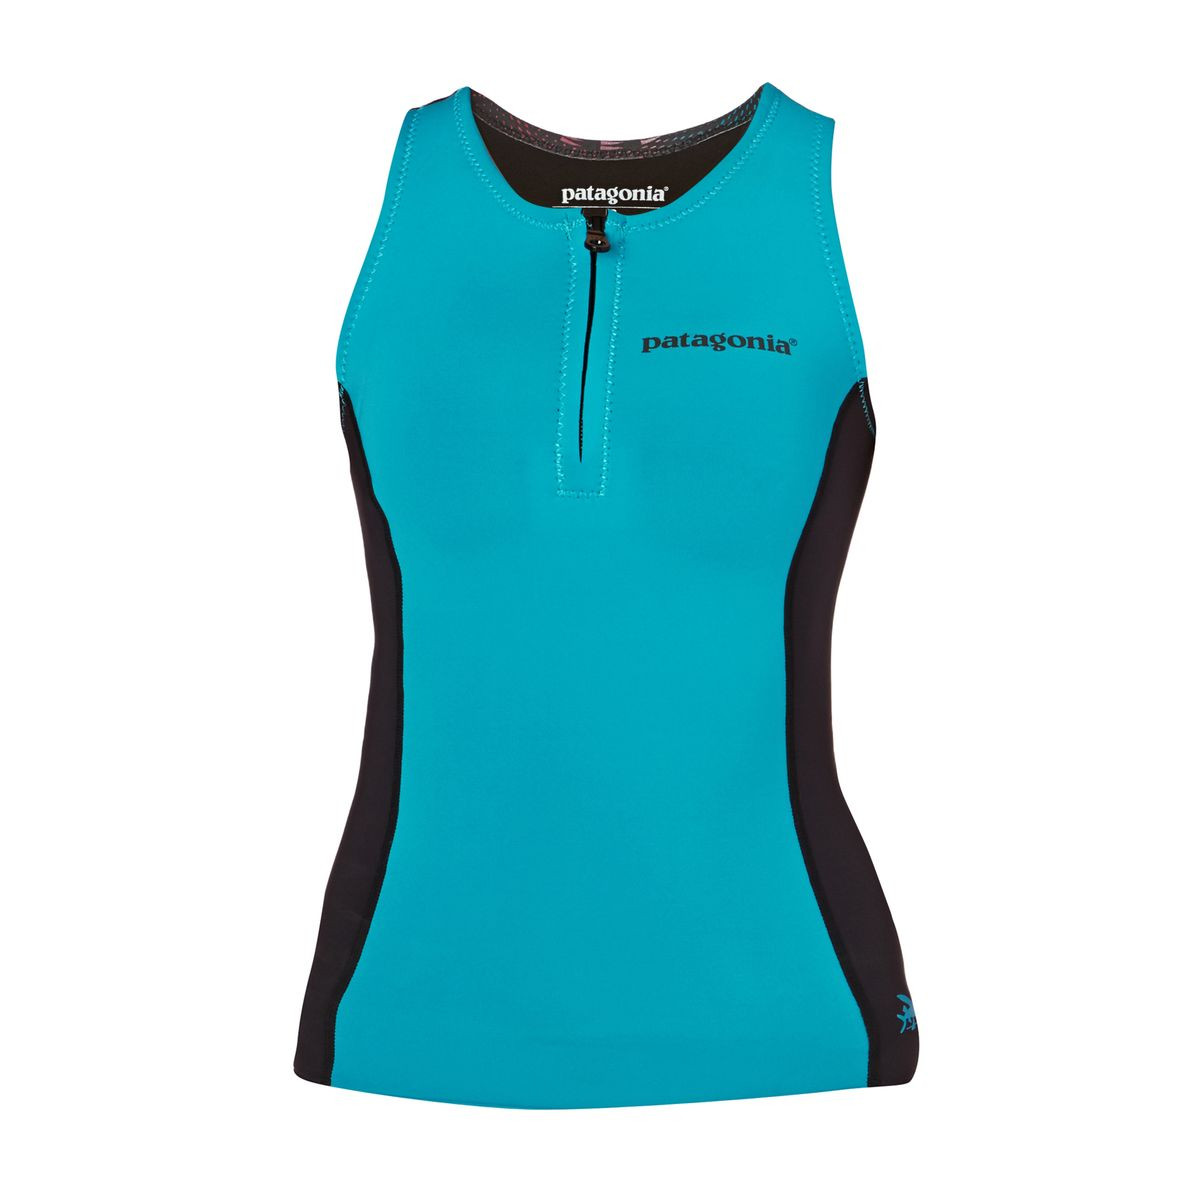 Patagonia Women R1 1.5mm 2017 Wetsuit Vest - Howling Turquoise